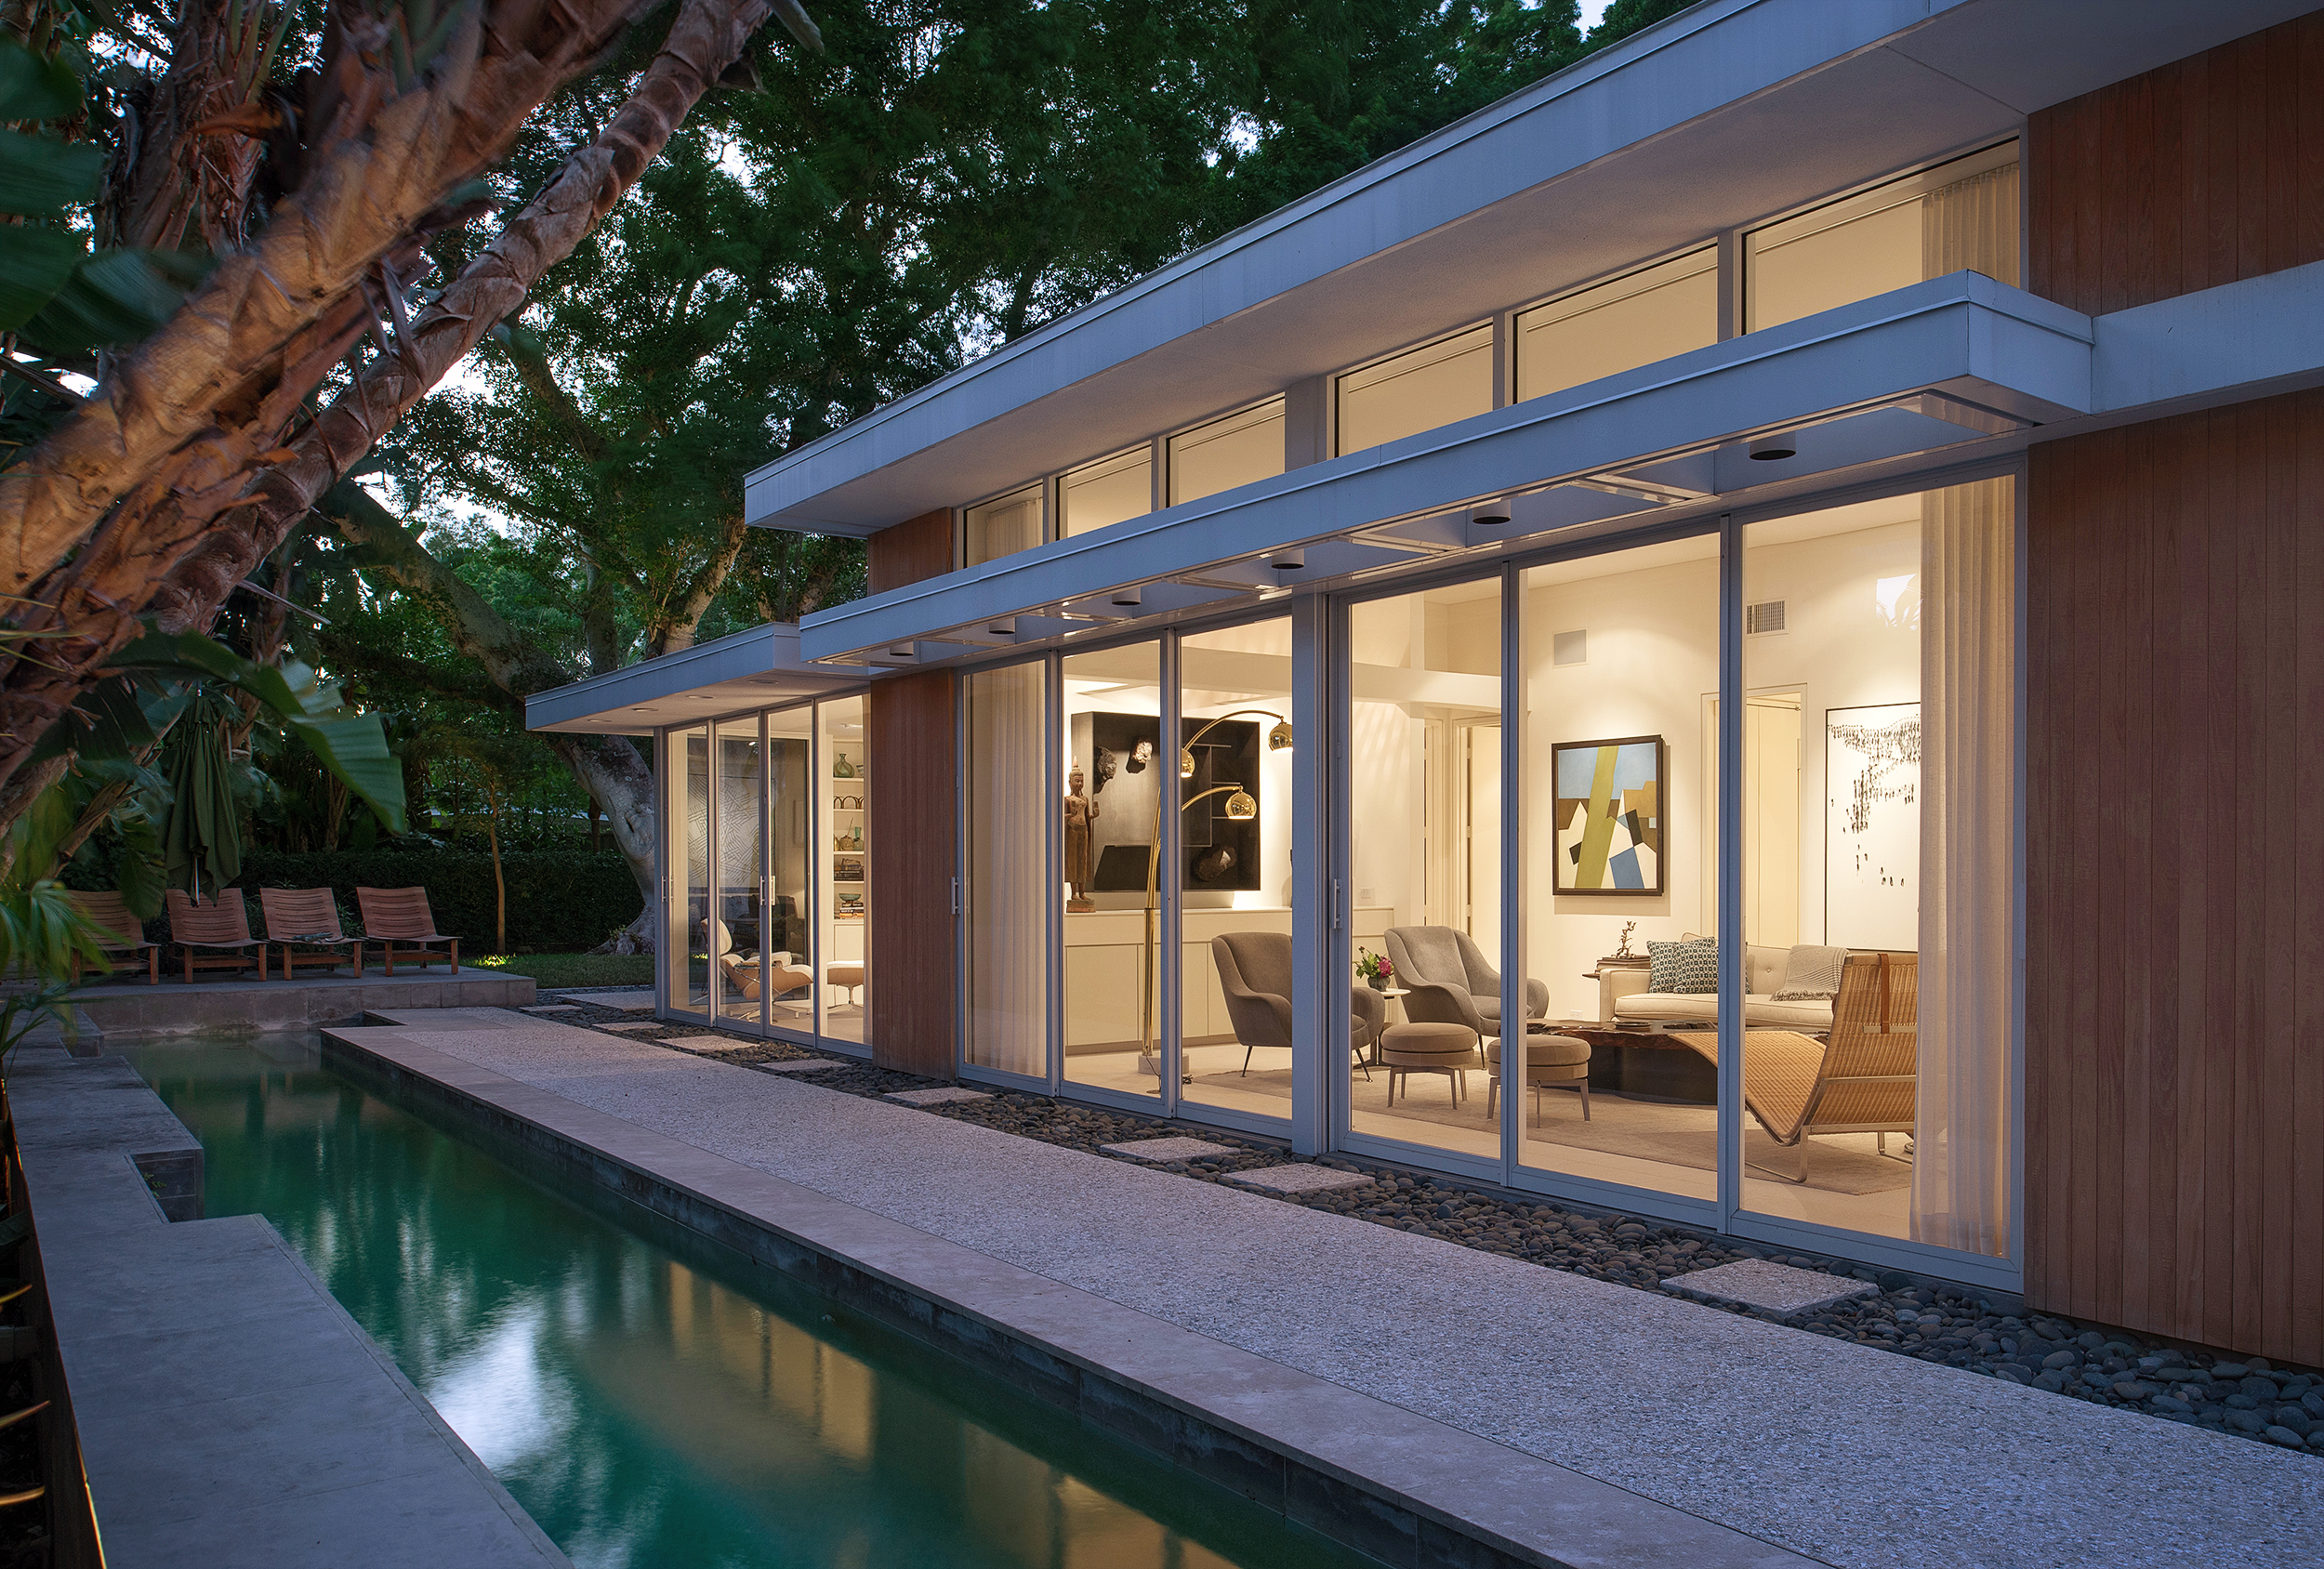 William-Rupp-Pavilion-House---Exterior-Late-Dusk-Pool-and-Living_warm.jpg